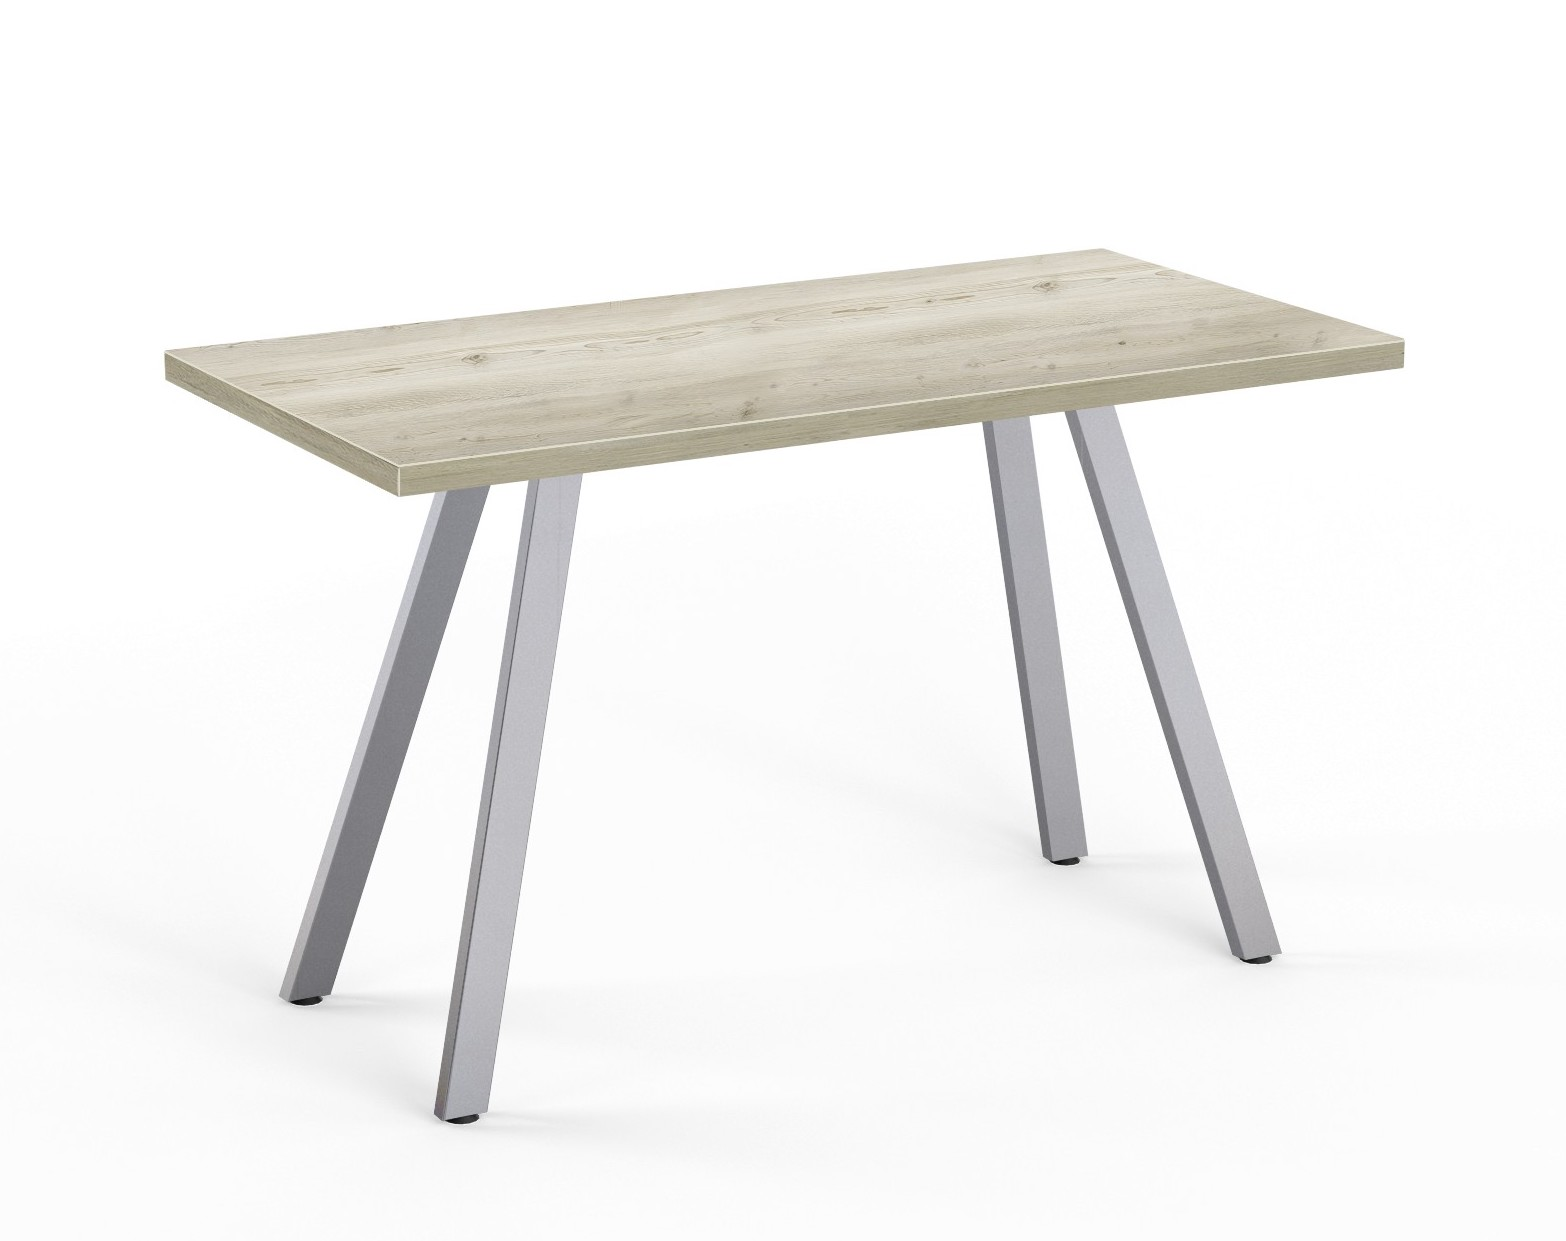 aged driftwood aim table by special-t